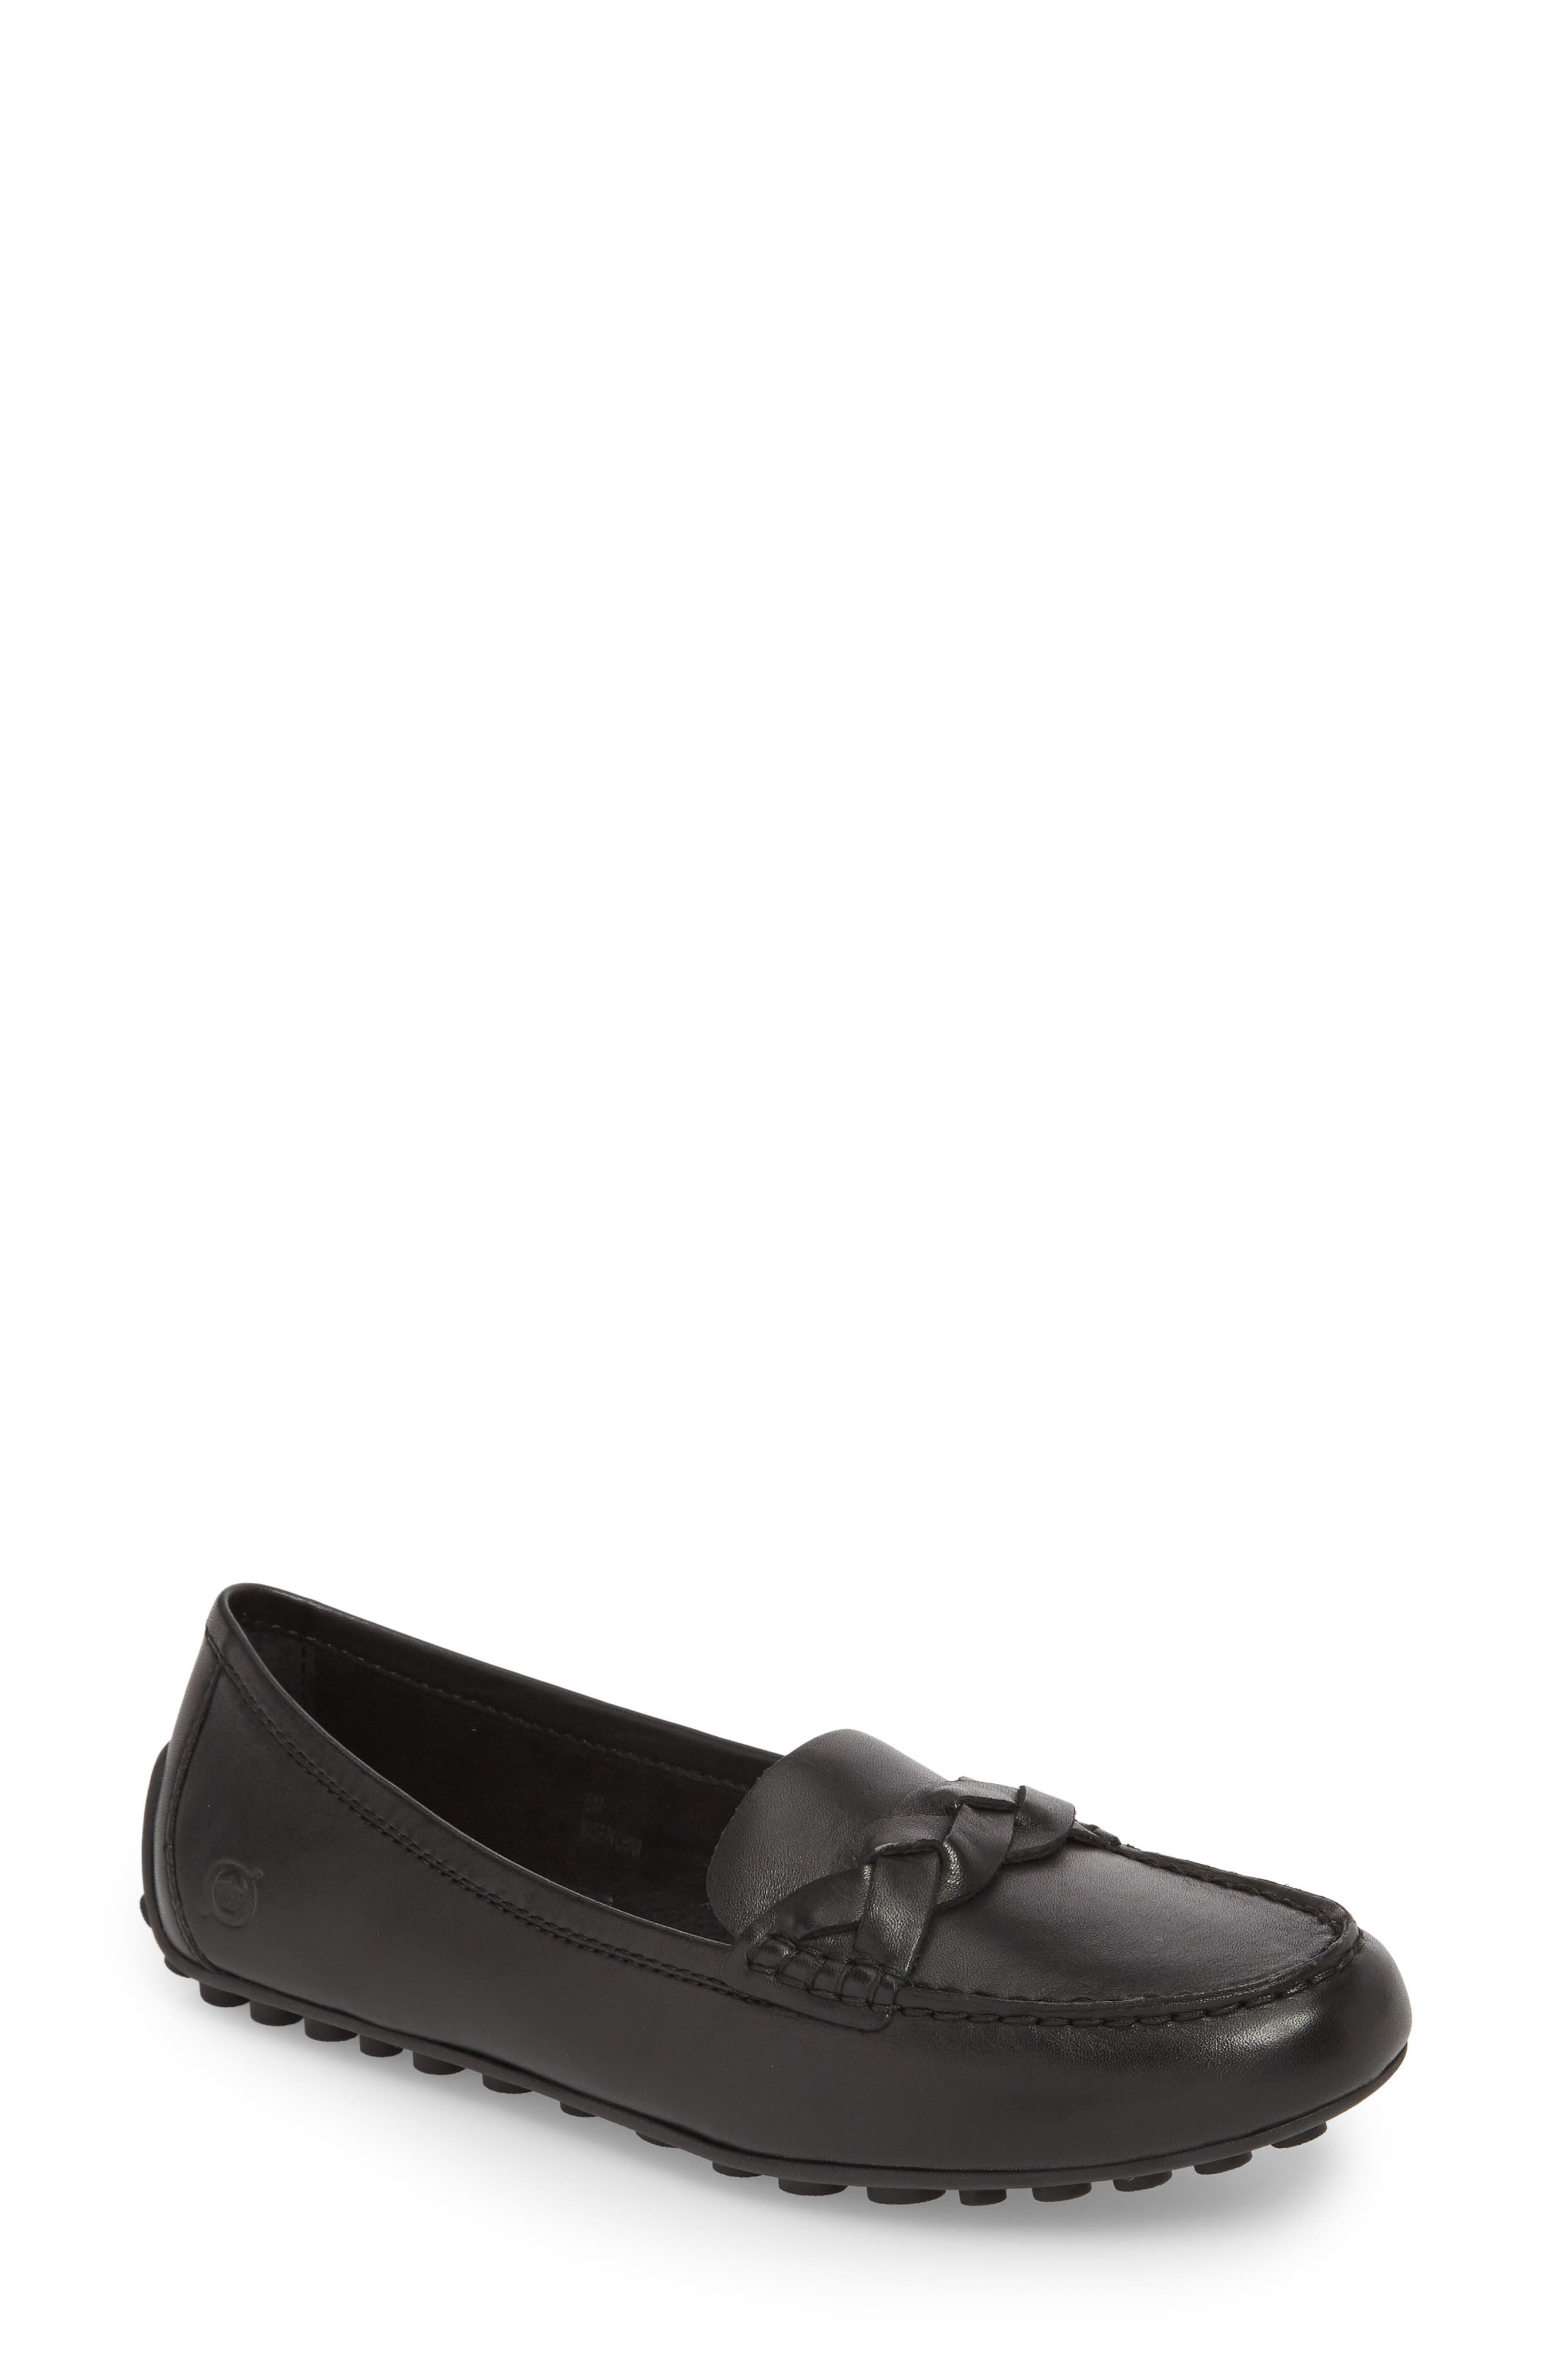 Kasa Loafer,                             Main thumbnail 1, color,                             BLACK LEATHER